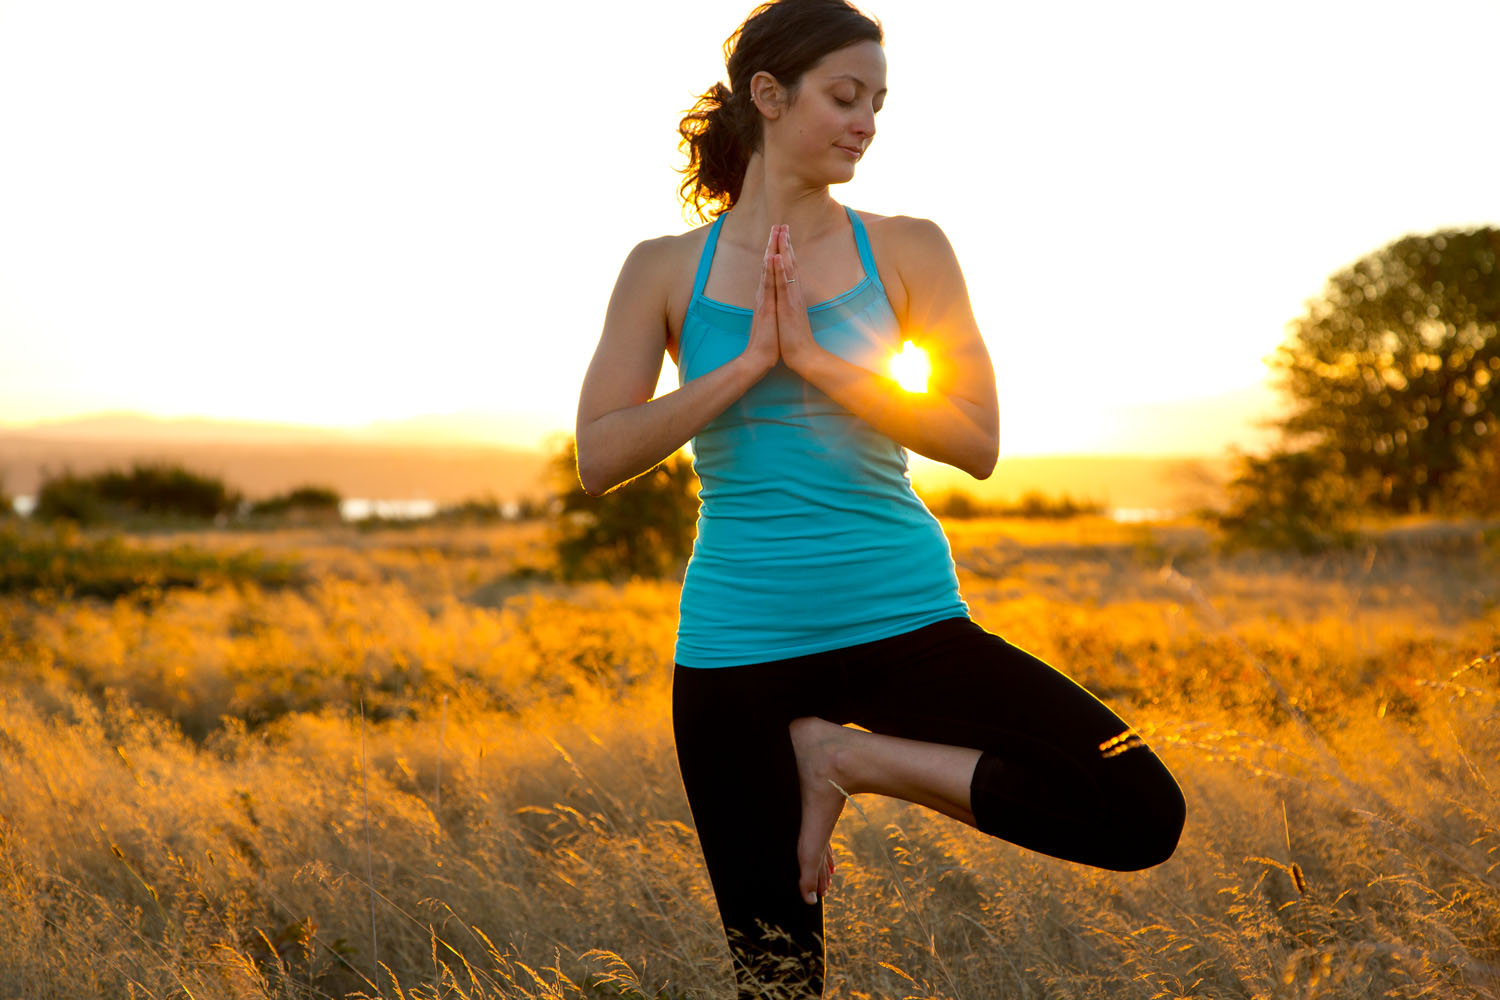 Lifestyle: Elizabeth Kovar practicing yoga in the Timothy grass at sunset, Discovery Park, Seattle